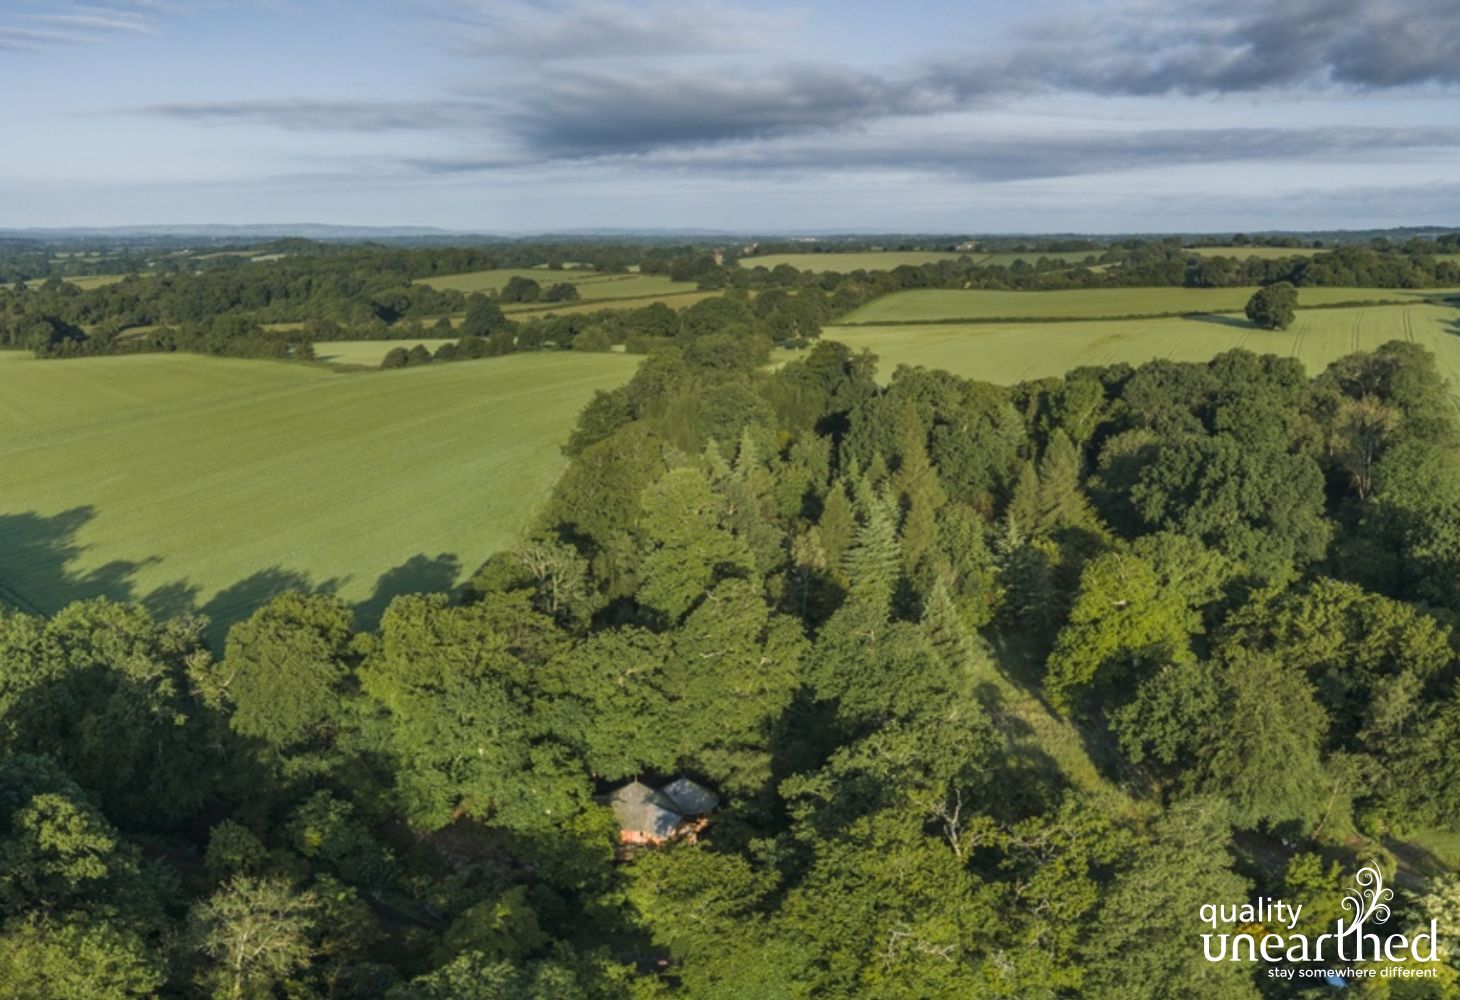 Aerial view of The Buzzardry treehouse set right in the middle of the Sussex woods with the 13 acres of private land from fields to lakes